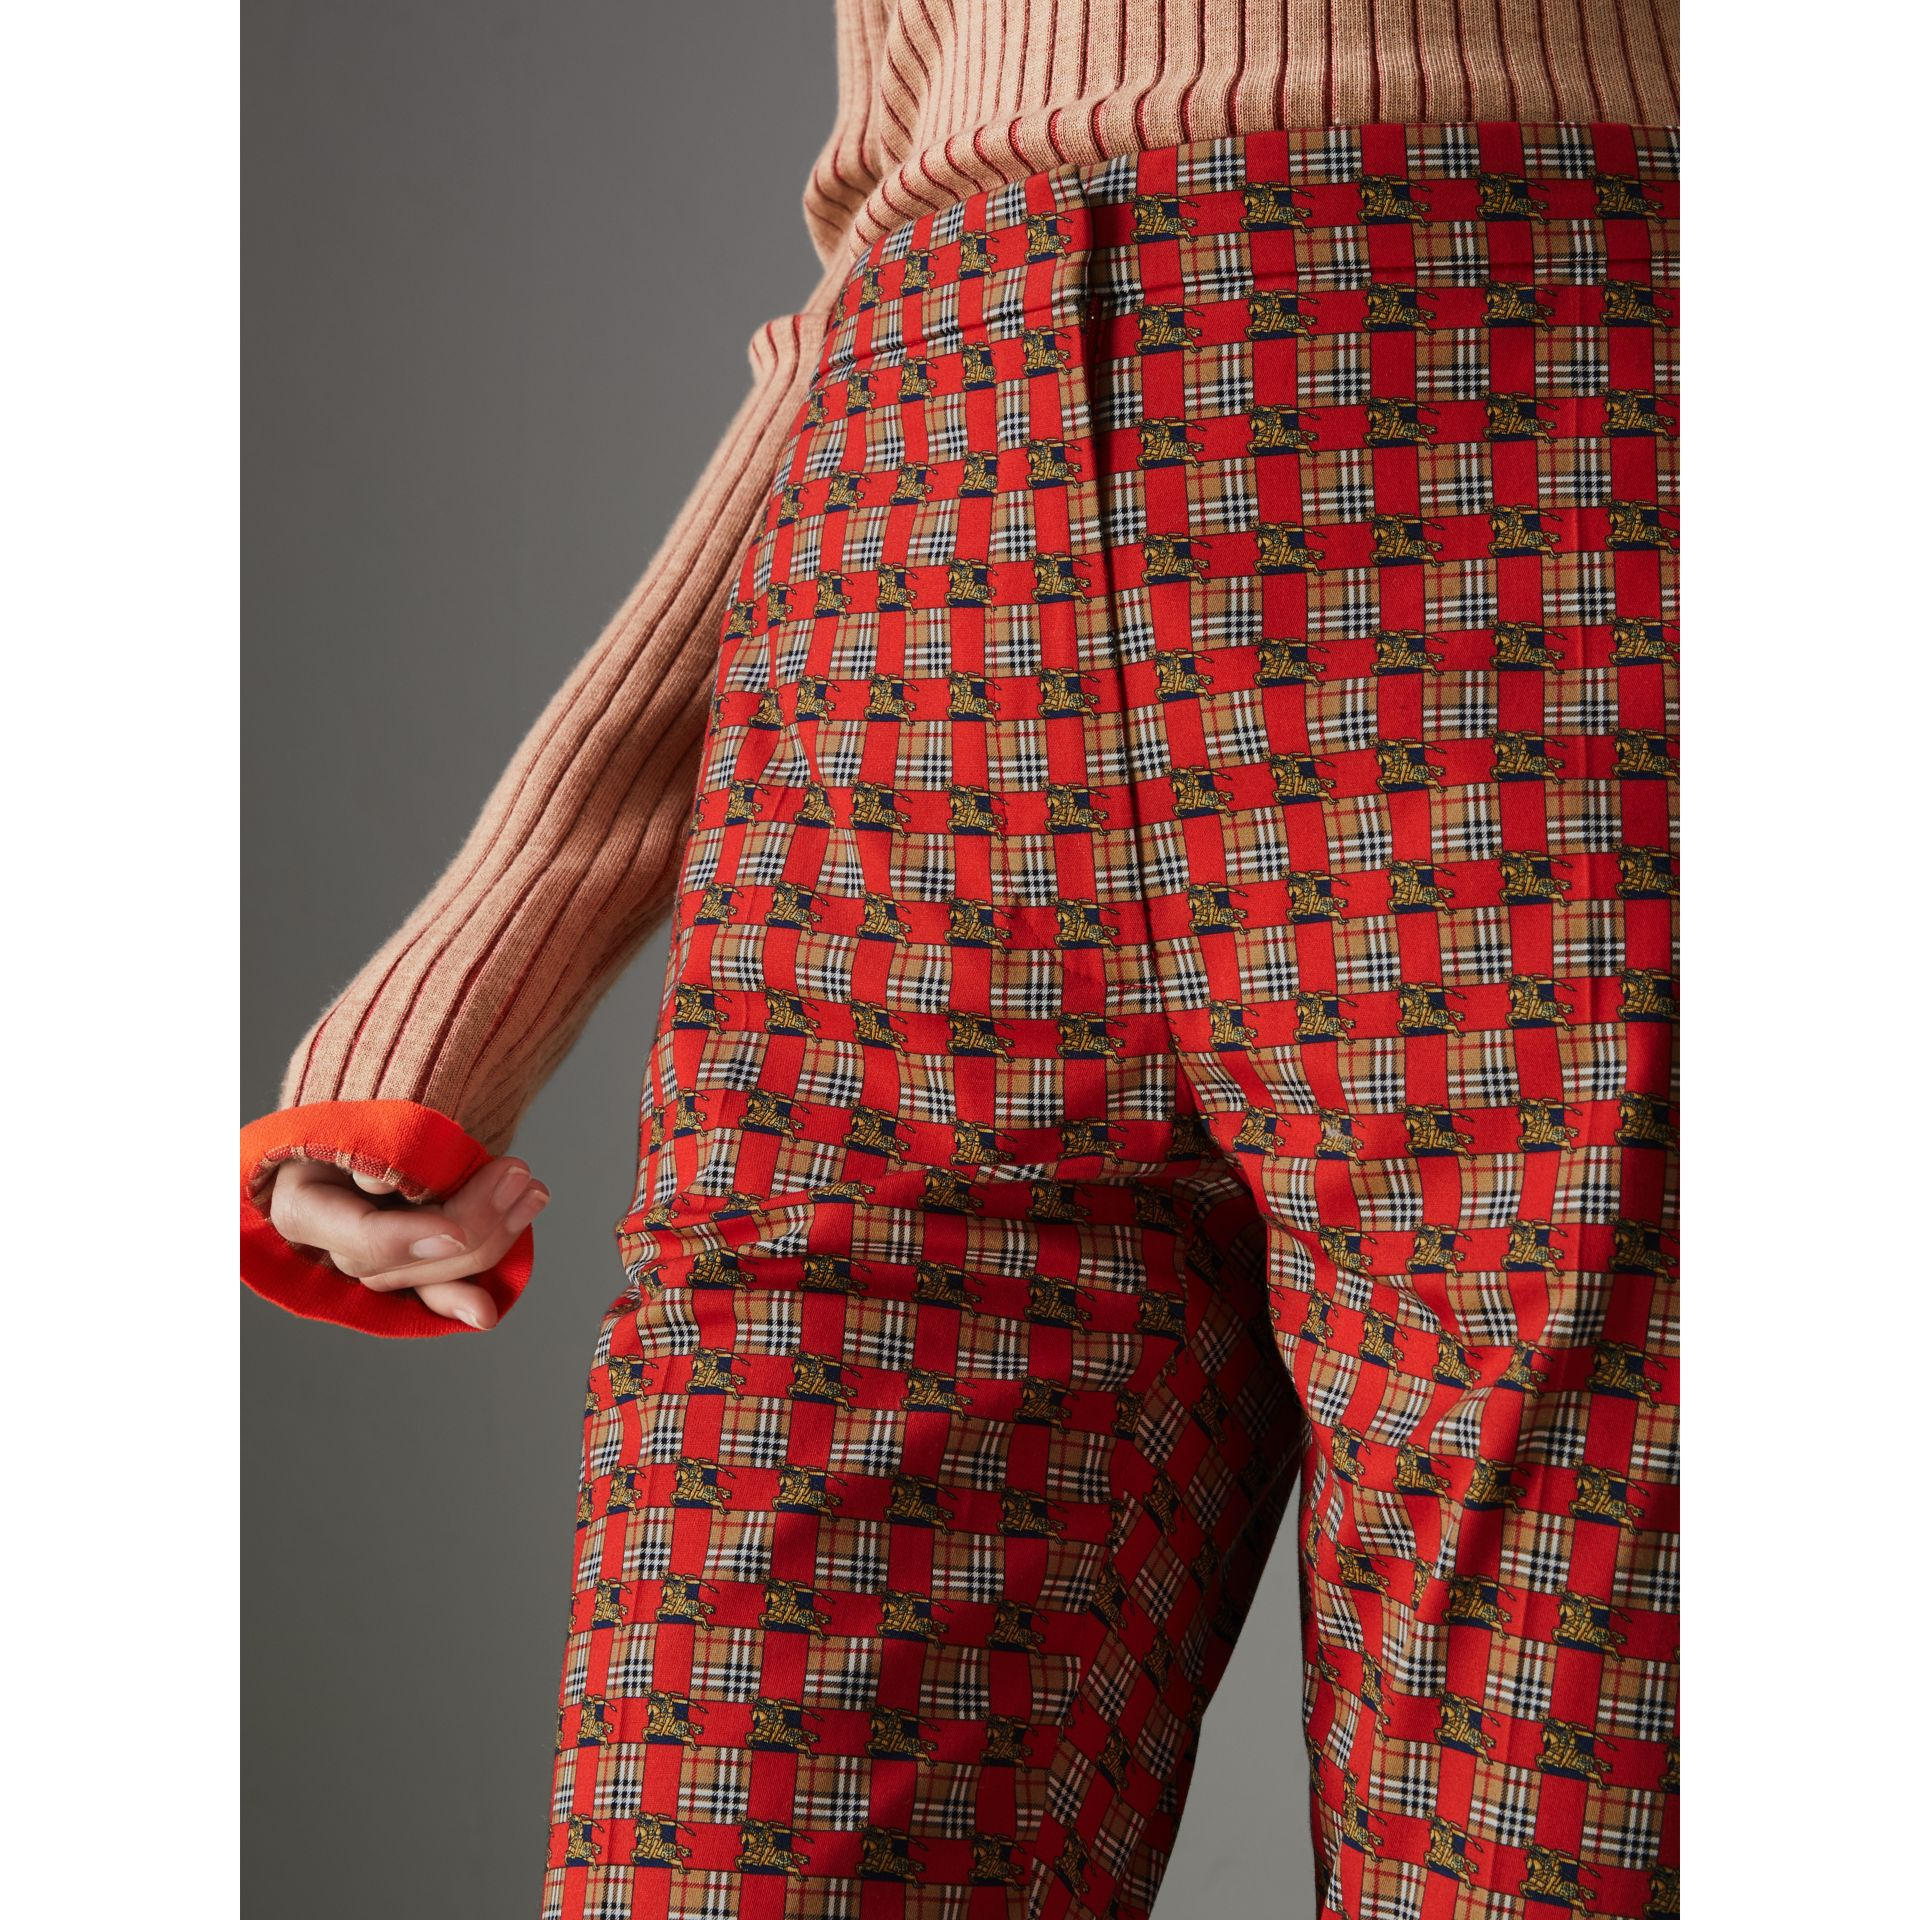 Tiled Archive Print Stretch Cotton Cigarette Trousers in Orange Red - Women | Burberry - gallery image 1